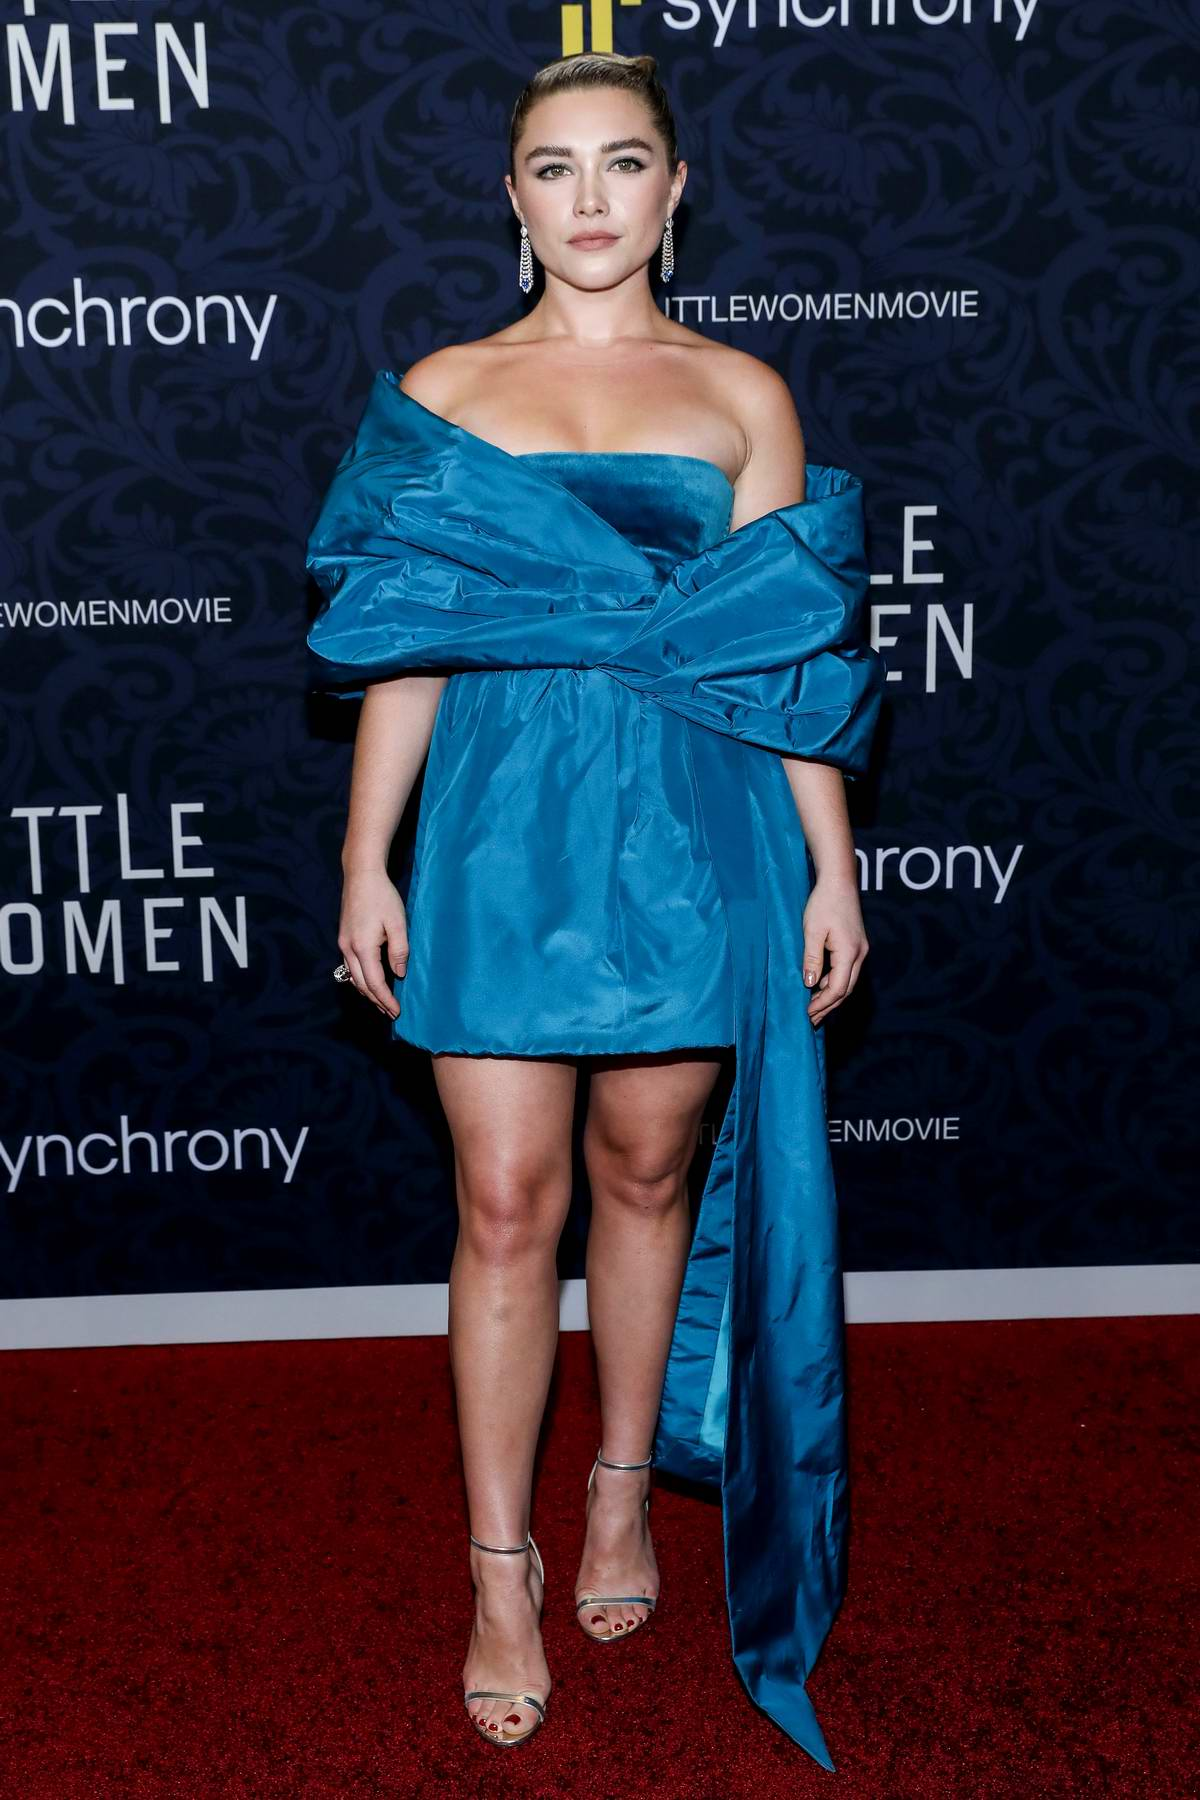 Florence Pugh attends the World Premiere of 'Little Women' held at MoMa in New York City